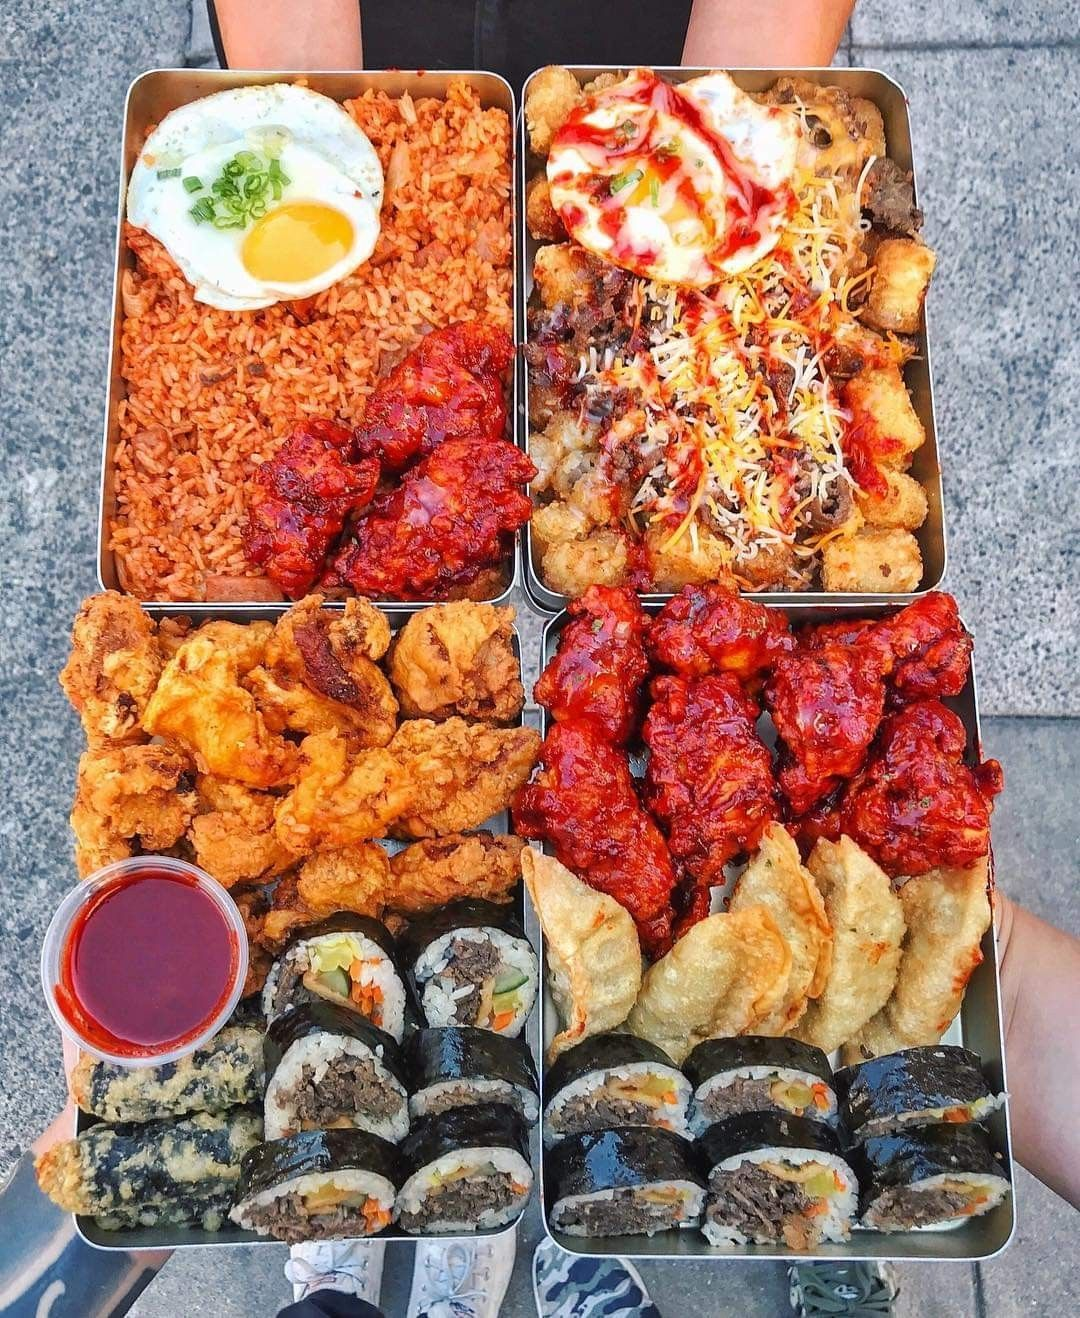 Ultimate Korean Lunch Box Follow Cookat For More Deliciousness Unhealthy Food Food Goals Street Food